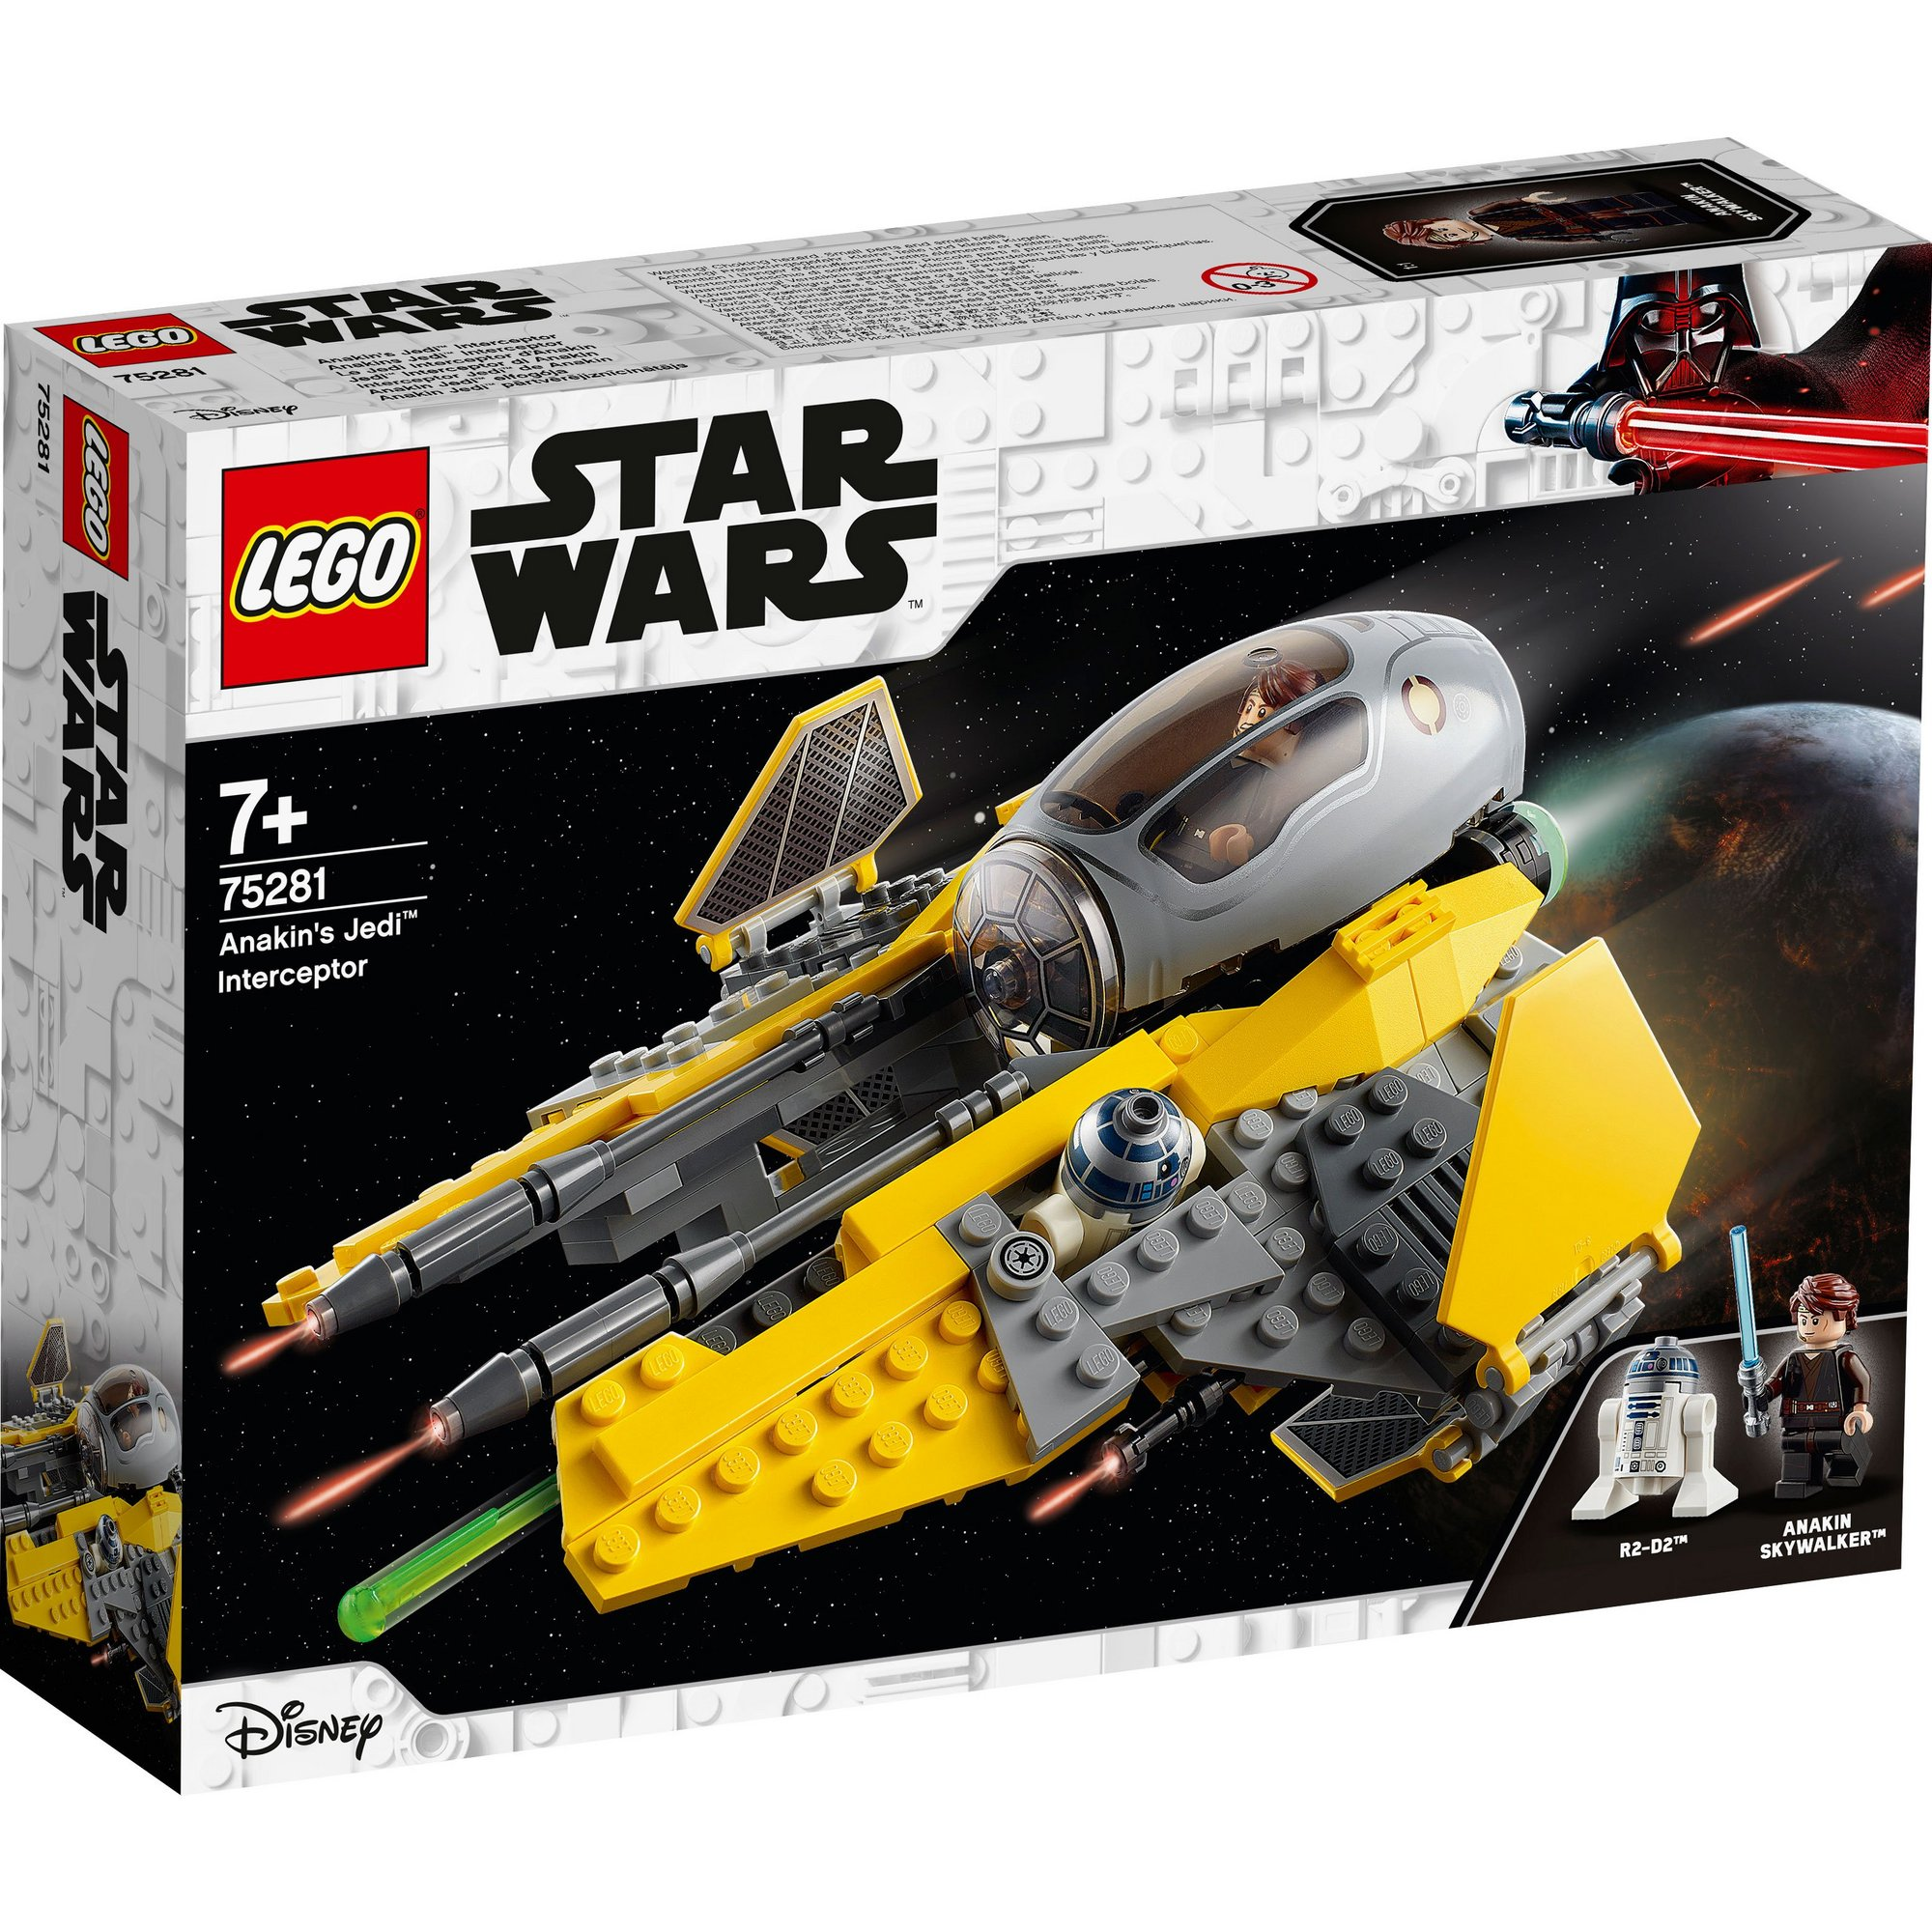 Image of LEGO Star Wars Anakins Jedi Interceptor